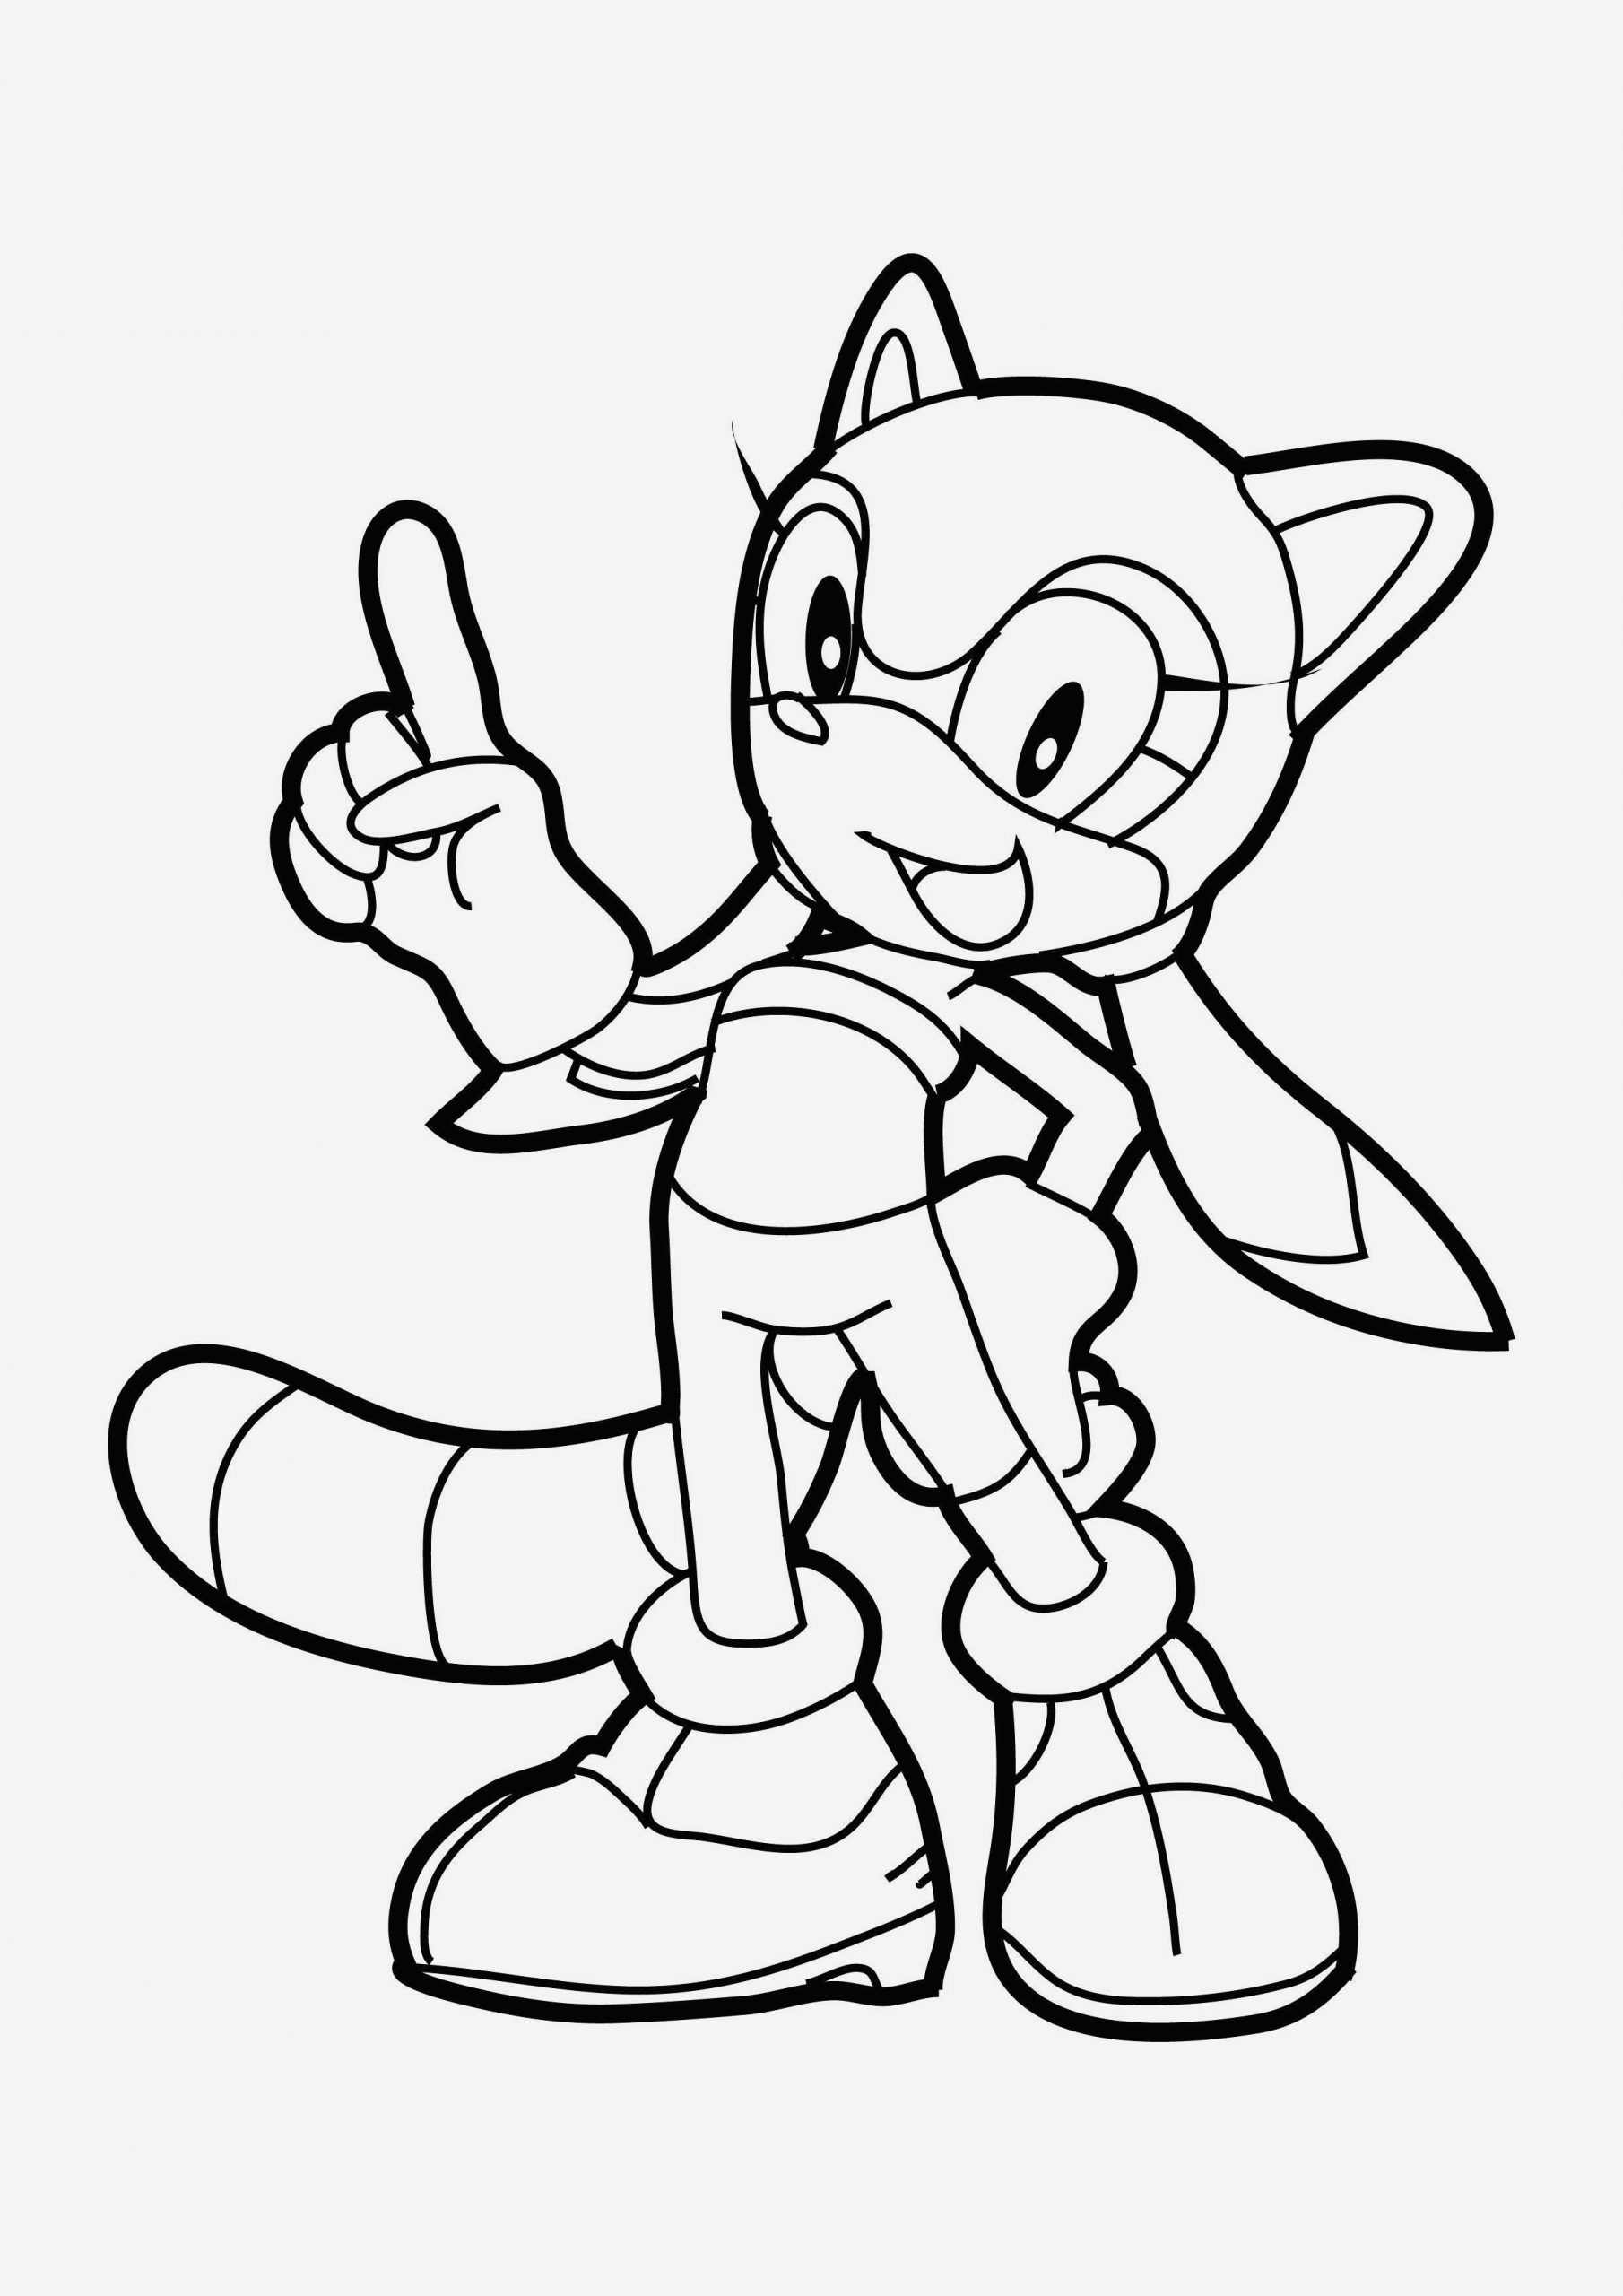 Coloriage sonic Le Film New Free Printable sonic the Hedgehog Coloring Pages for Kids Of Coloriage sonic Le Film